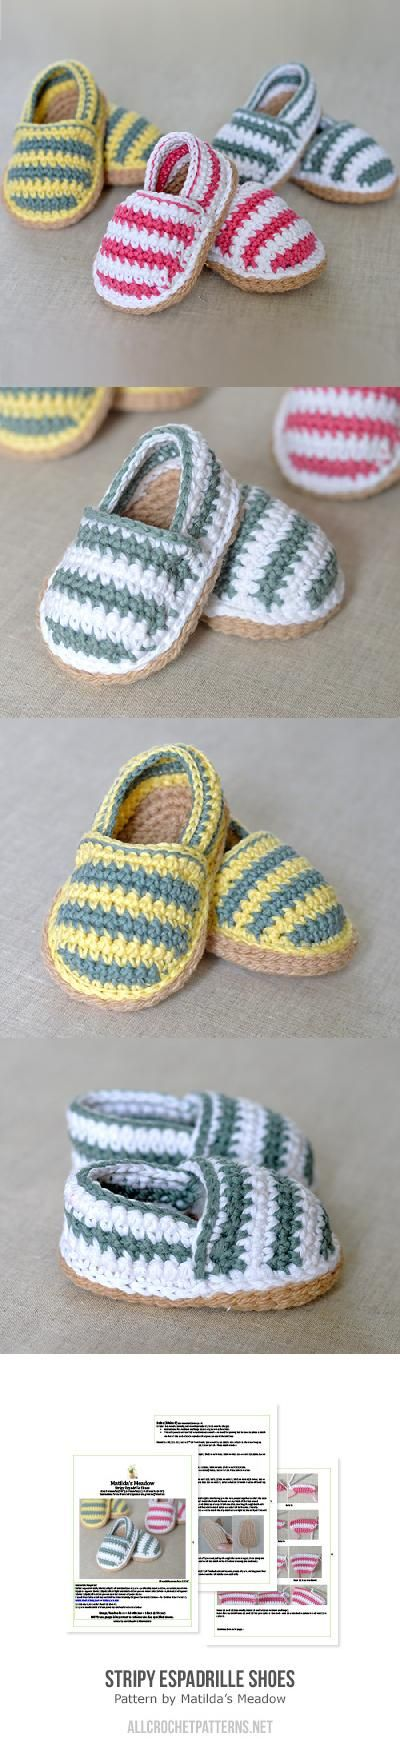 Stripy Espadrille Shoes Crochet Pattern